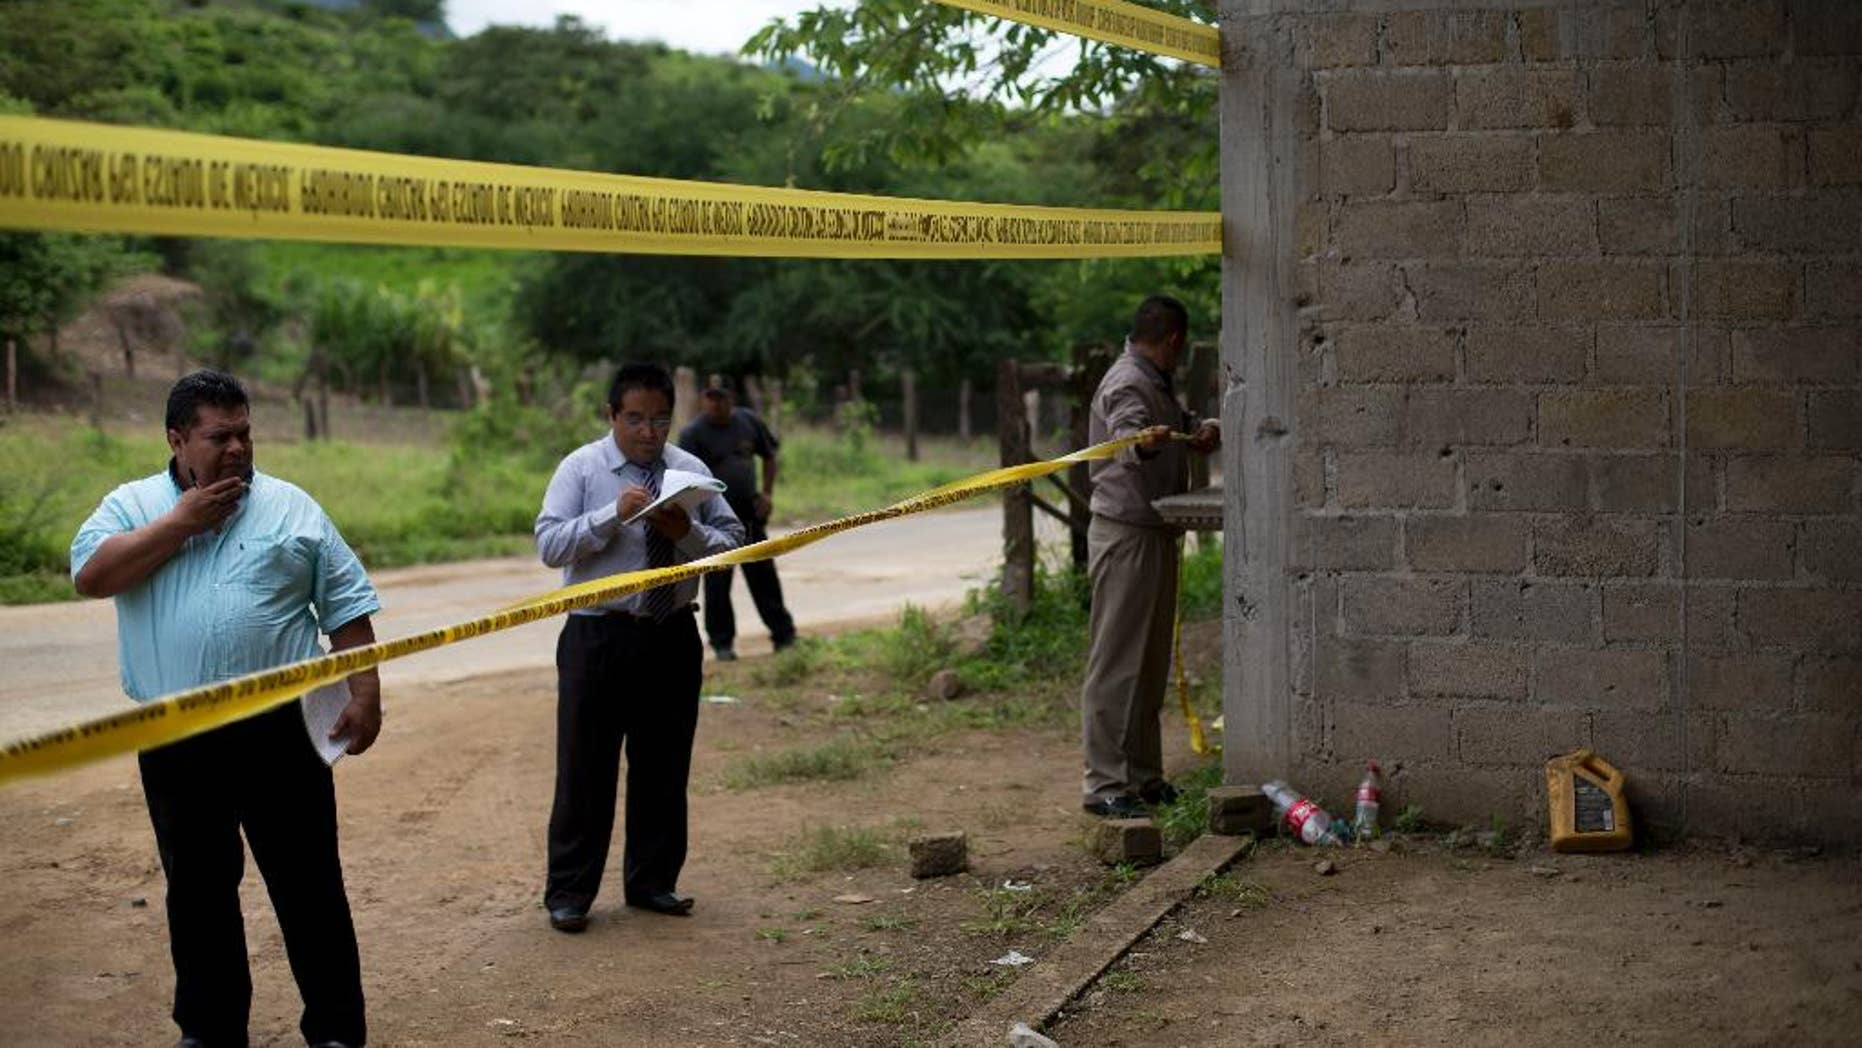 FILE - In this July 3, 2014 file photo, state authorities seal off an unfinished grain warehouse that was the site of a shootout between soldiers and alleged criminals on the outskirts of the village of San Pedro Limon in Mexico state, Mexico. Authorities in Mexico said Tuesday, July 19, 2016 they will fire seven or eight investigators and suspend 22 others for misconduct related to the 2014 army slayings of 22 suspected gang members. The country's human rights commission says soldiers killed at least a dozen of the suspects after they surrendered. (AP Photo/Rebecca Blackwell, File)